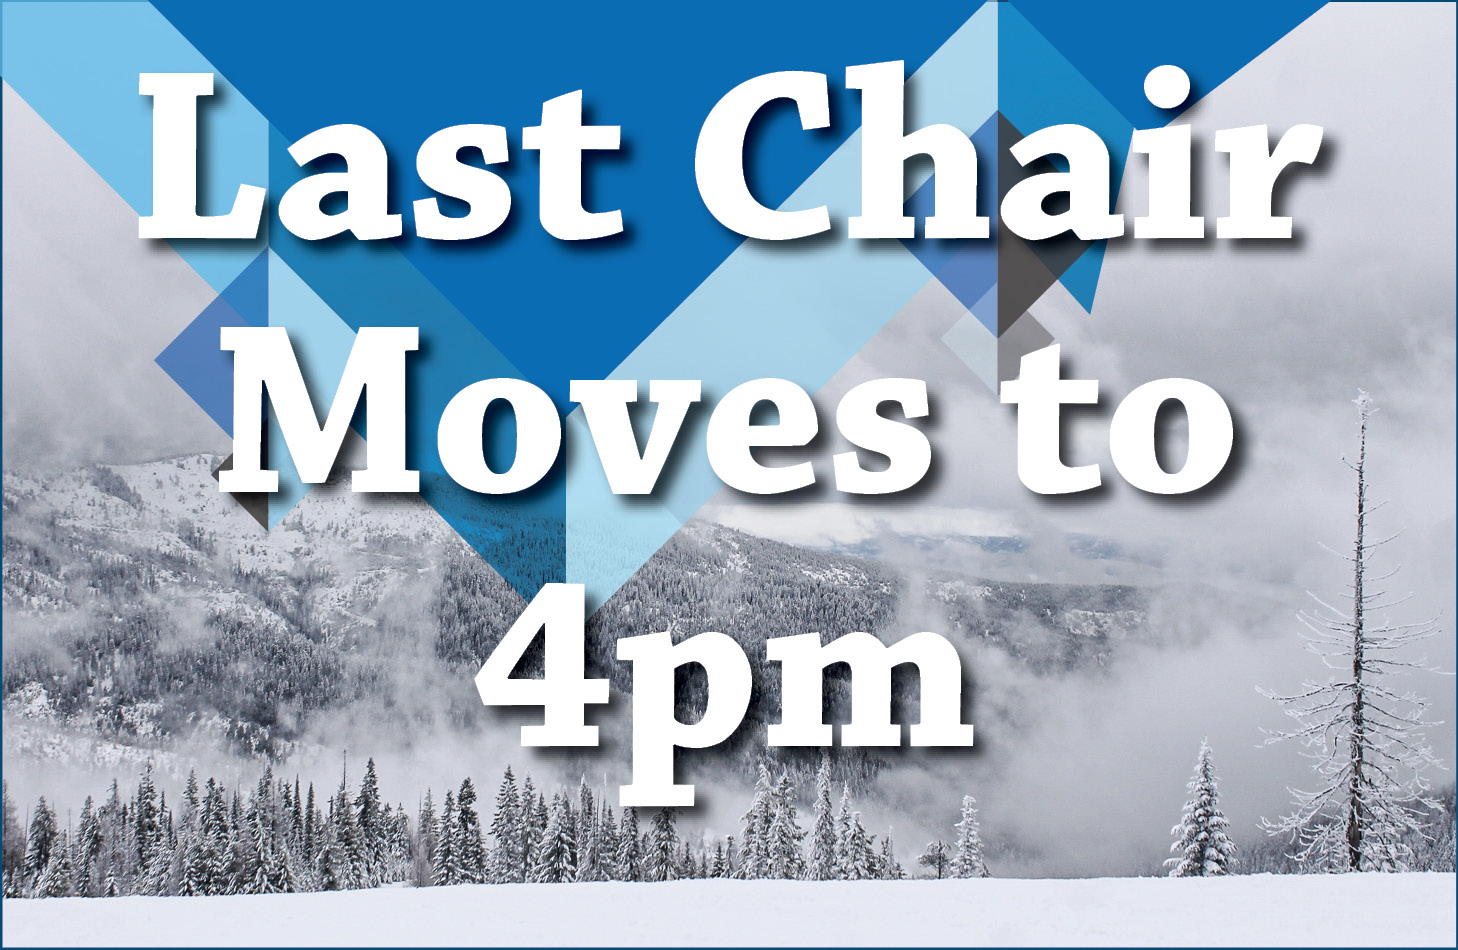 Last Chair moves to 4pm